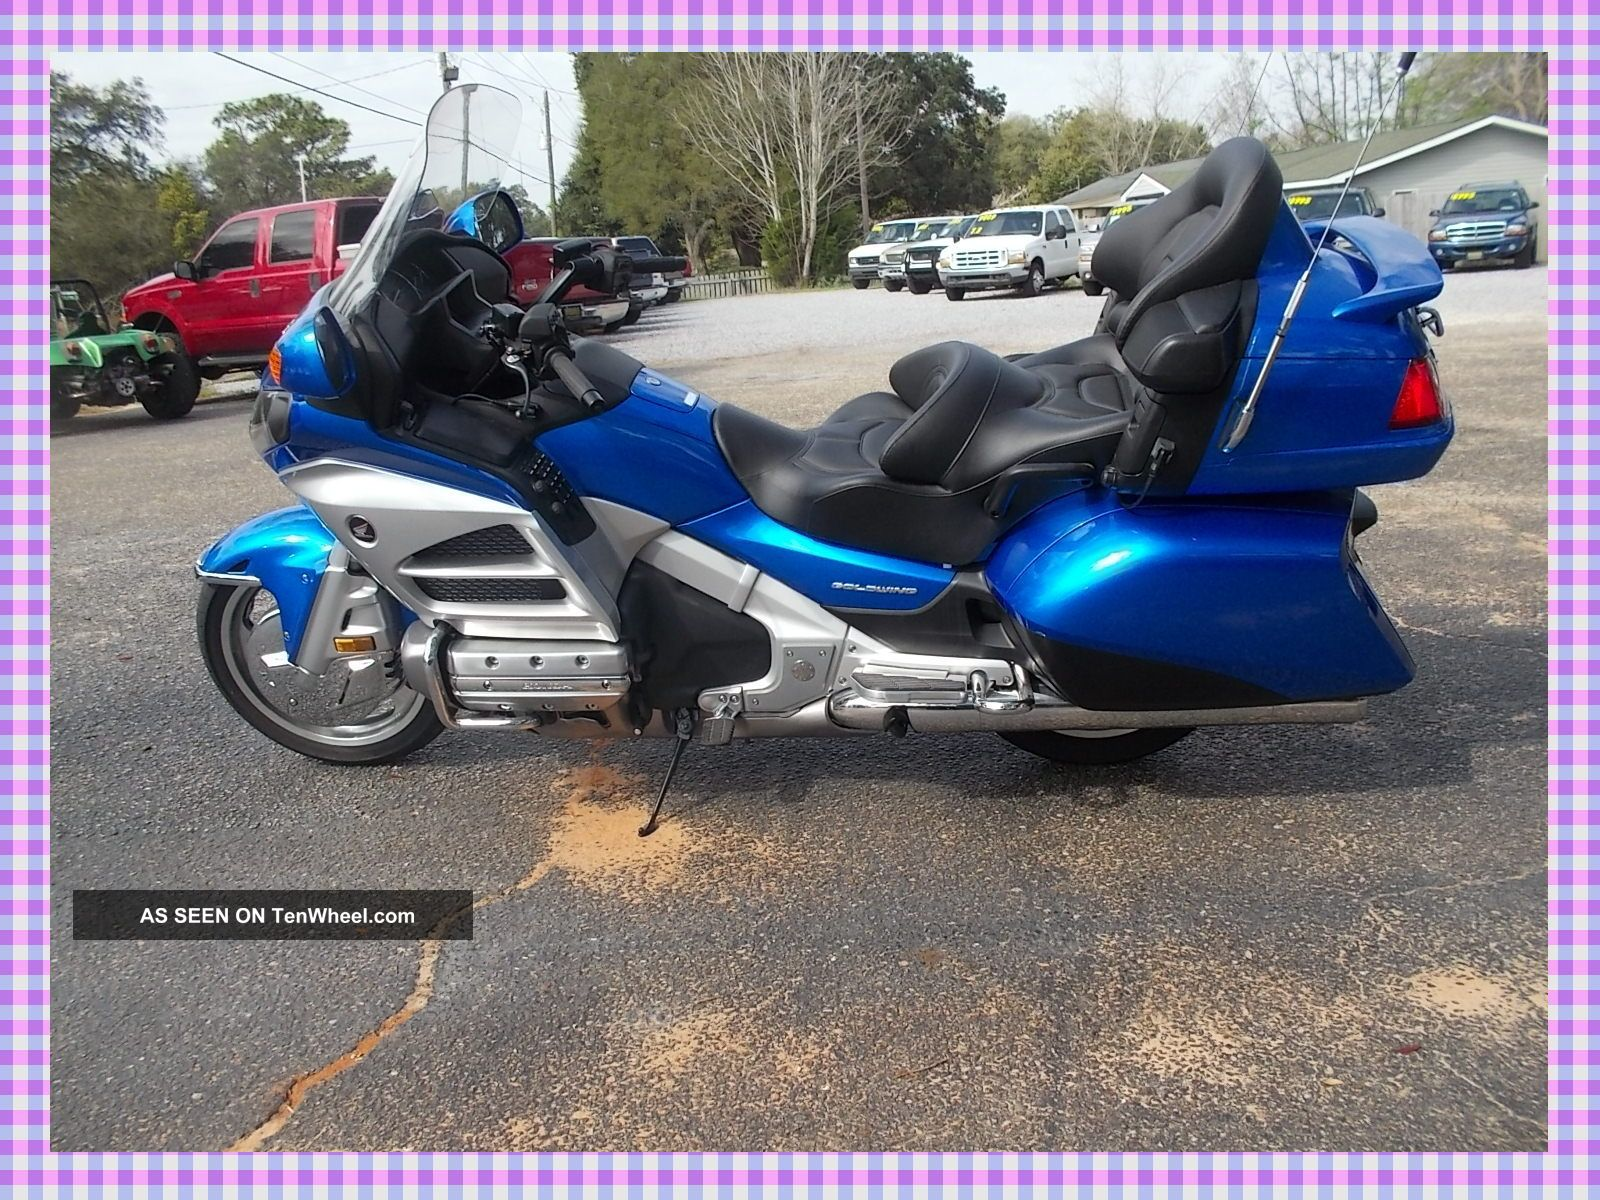 2012 Honda Goldwing 1800 Gold Wing photo